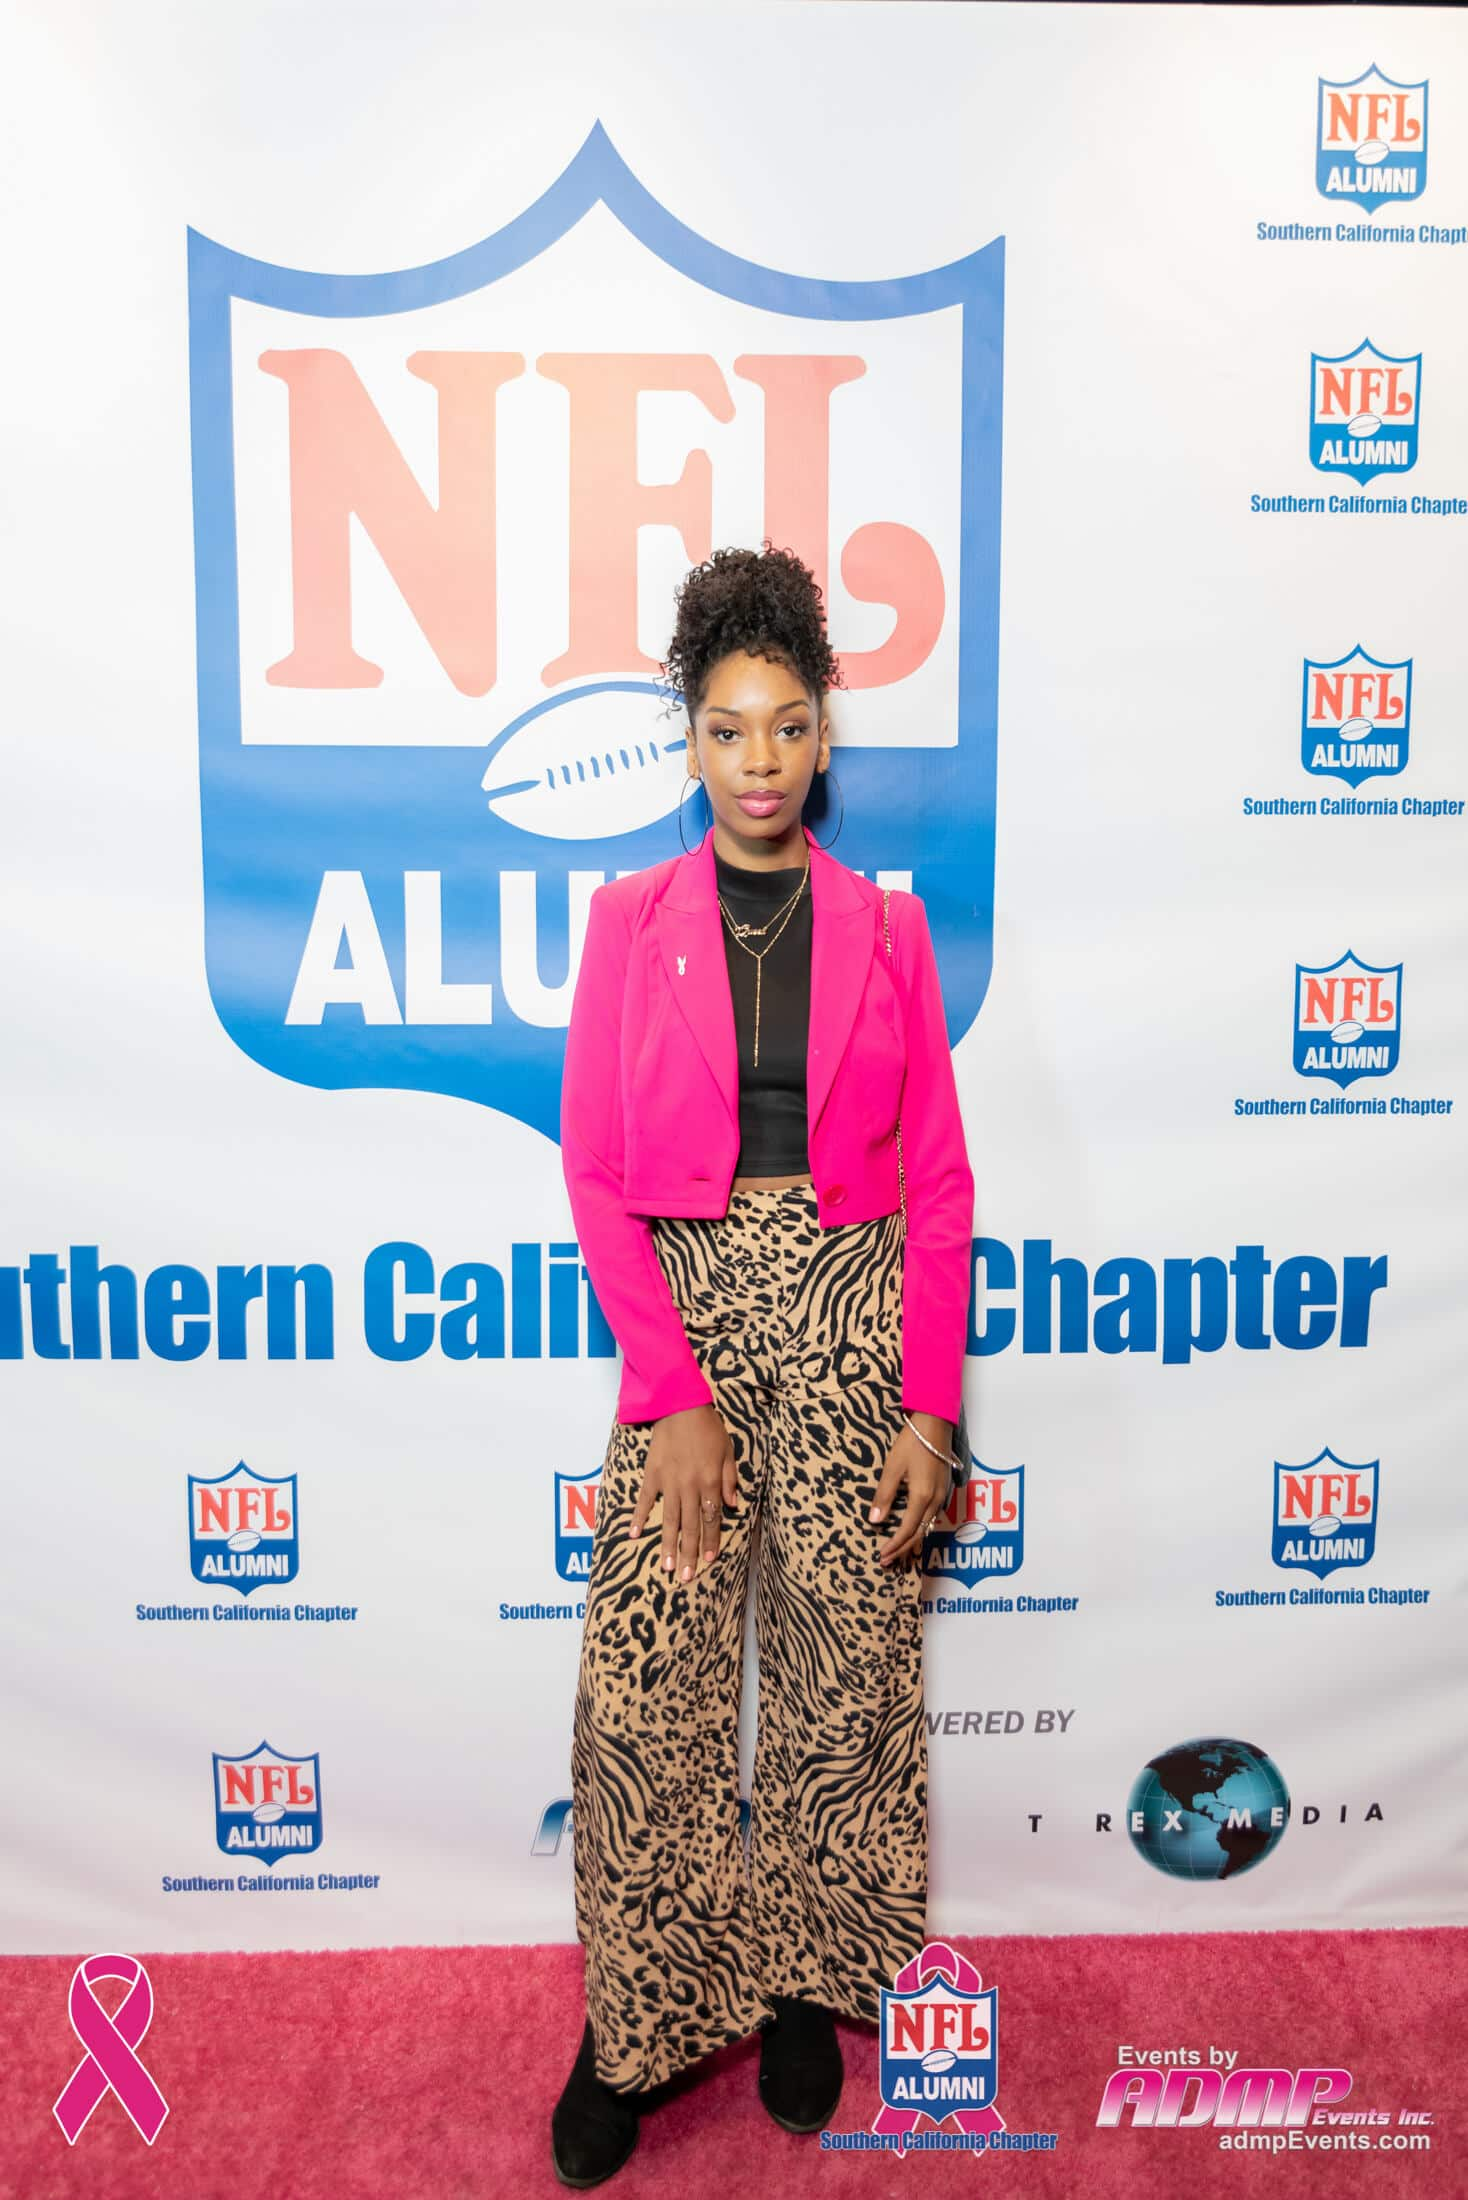 NFL Alumni SoCal Charity Event Series Breast Cancer Event 10-14-19-278